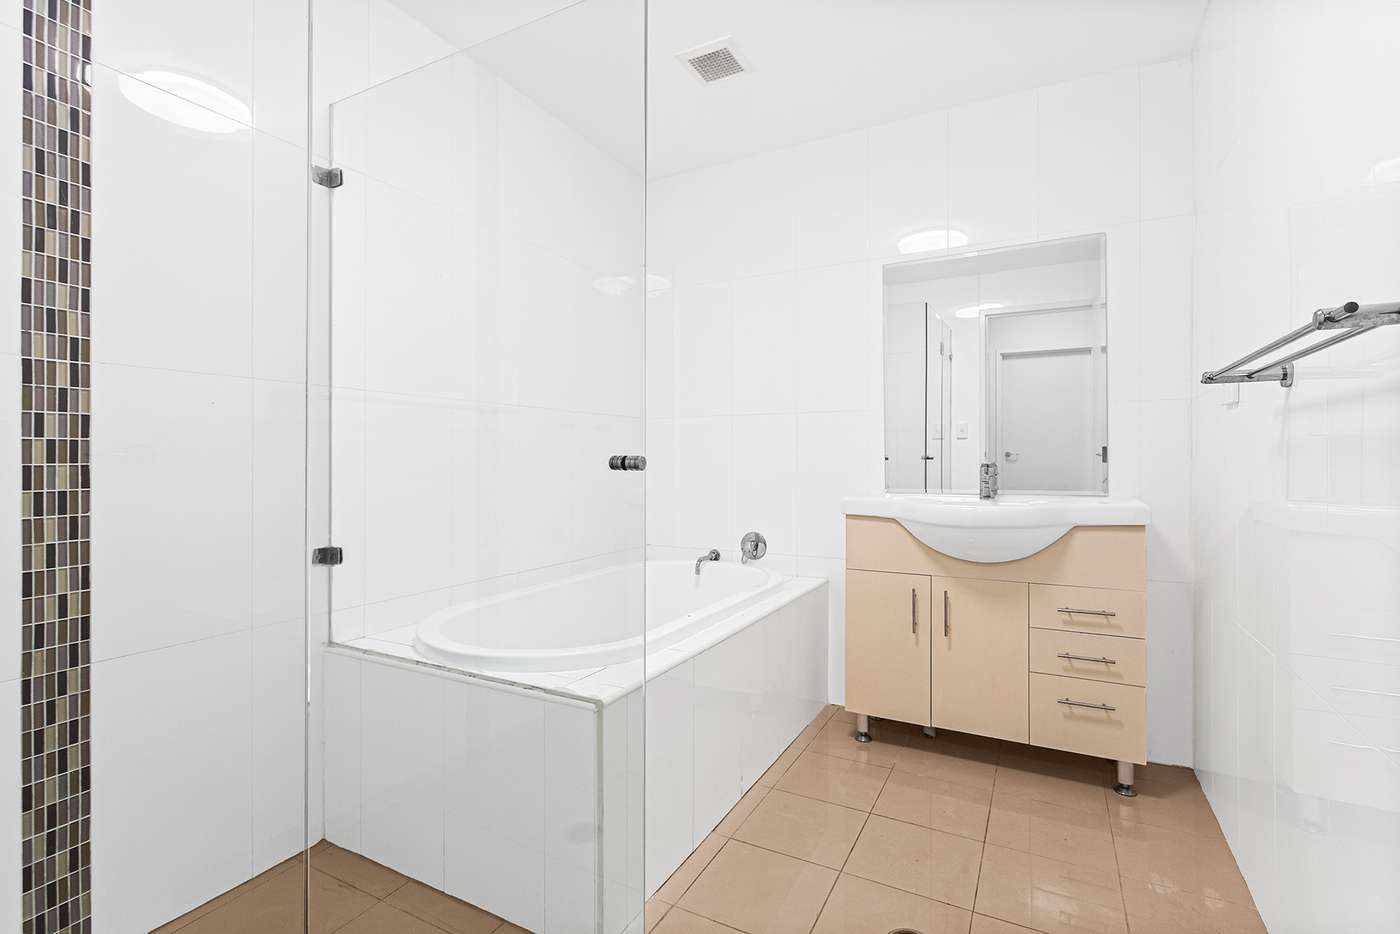 Sixth view of Homely apartment listing, 1/162 Corrimal Street, Wollongong NSW 2500